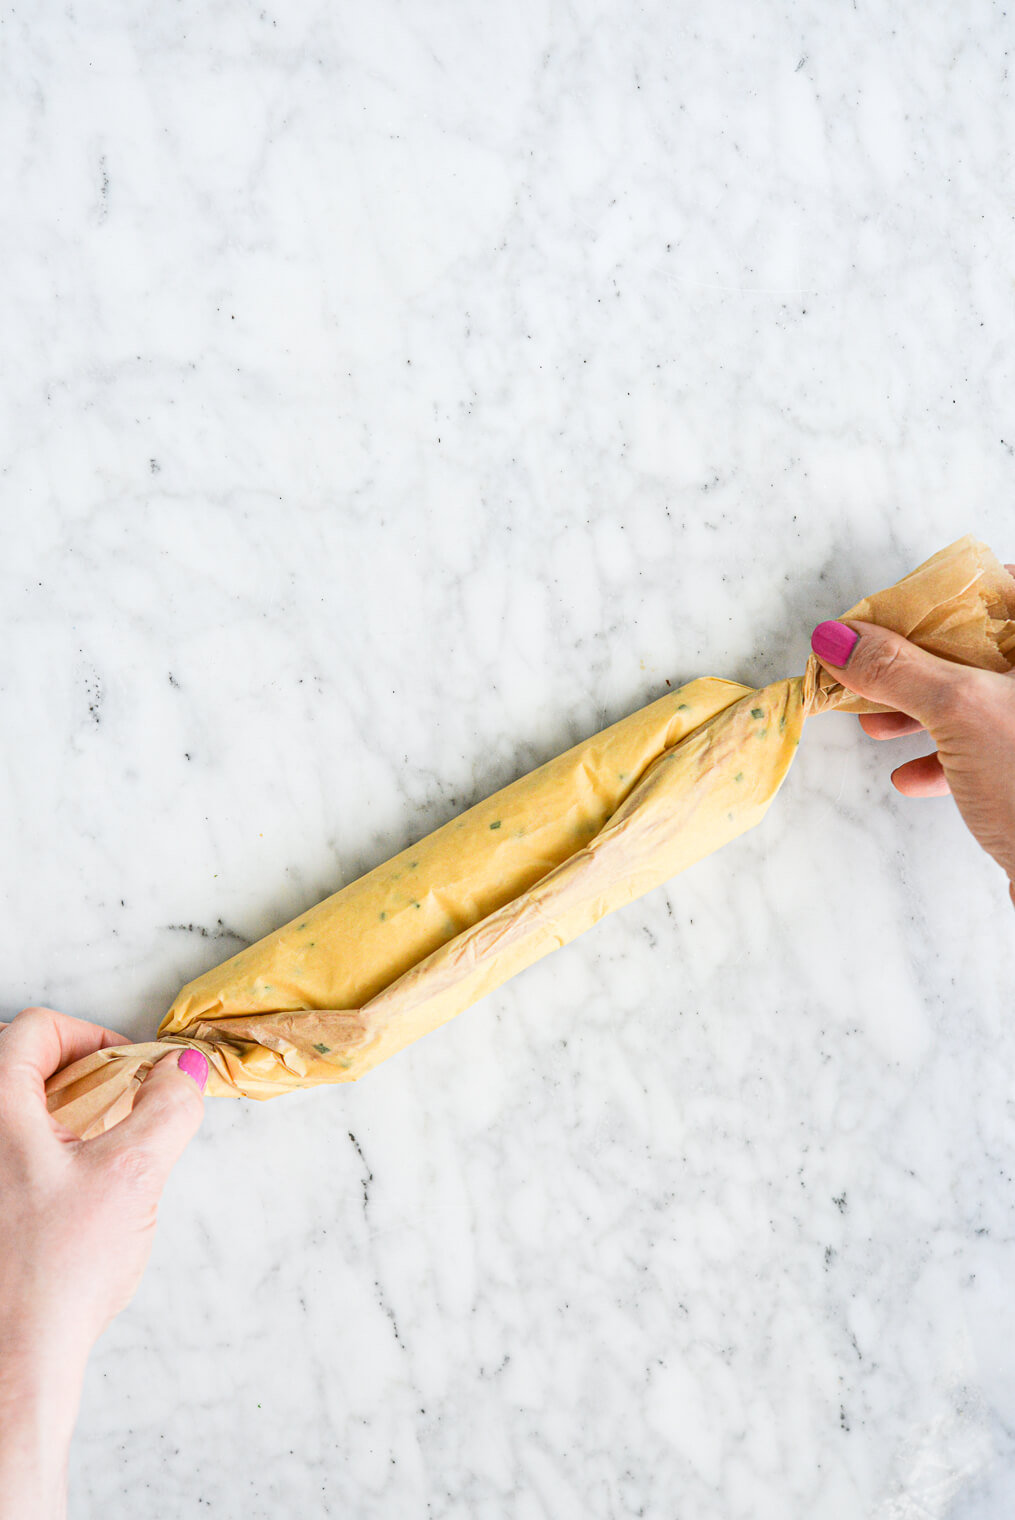 a woman's hands folding parchment paper over a log of compound garlic herb butter. All on a marble surface.